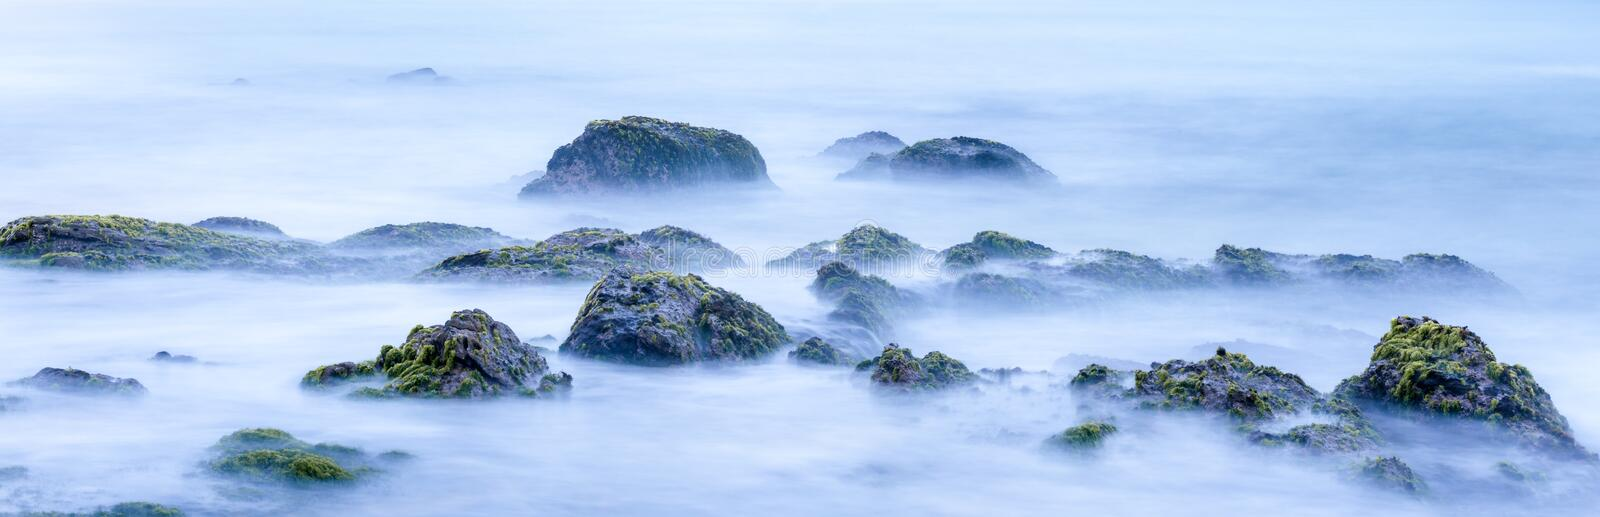 Long exposure of mystery ocean and rocks royalty free stock photos